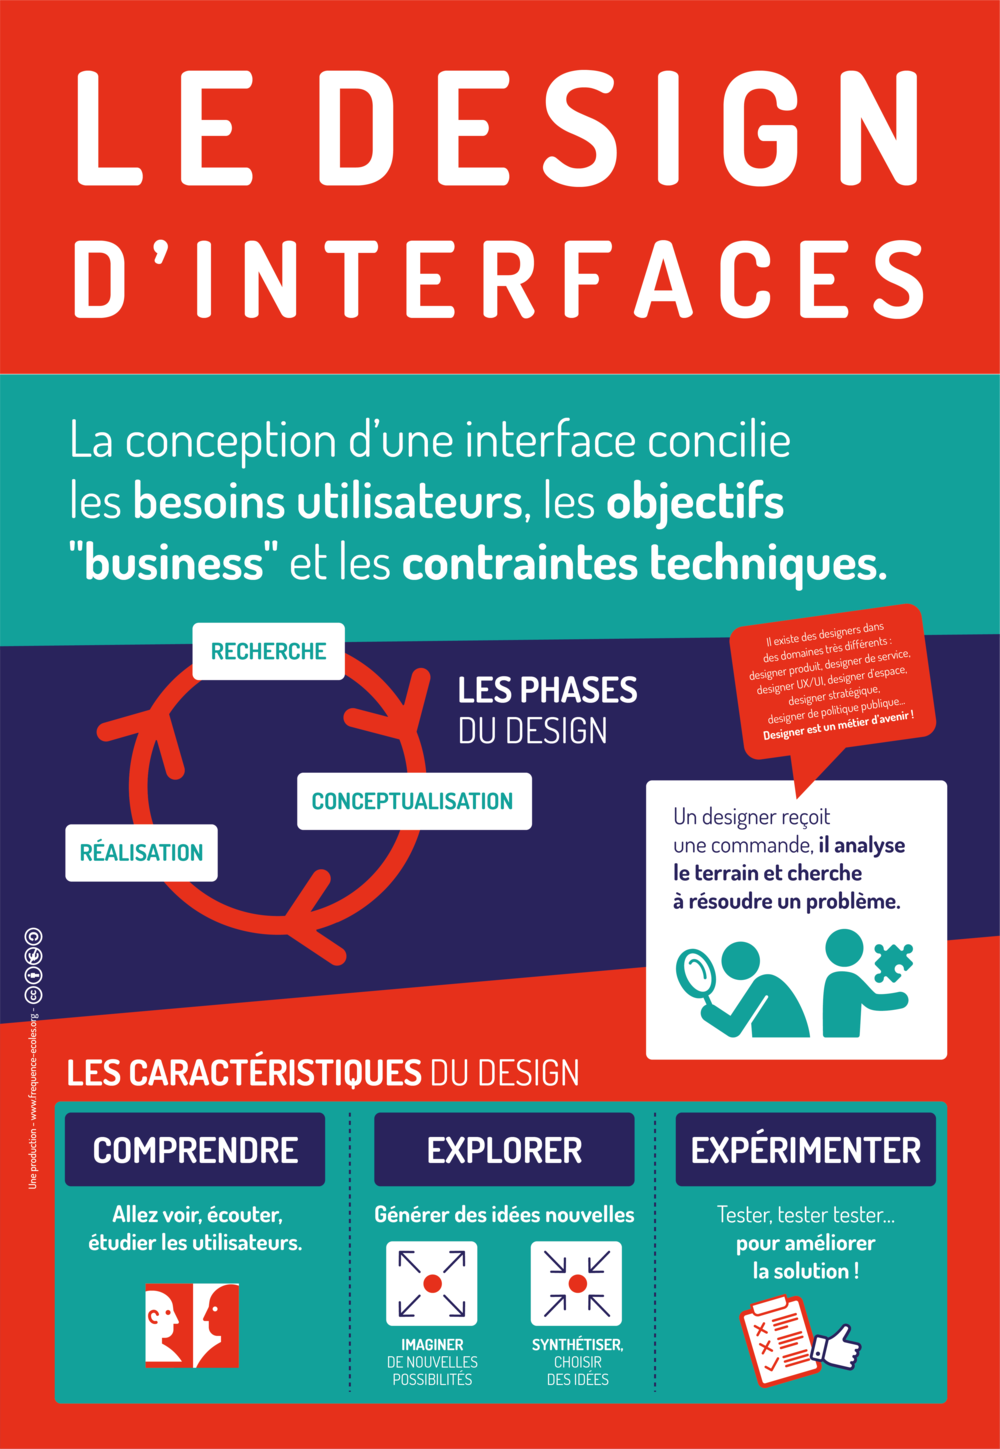 Interfaces_Plan de travail 1 copie 2.png